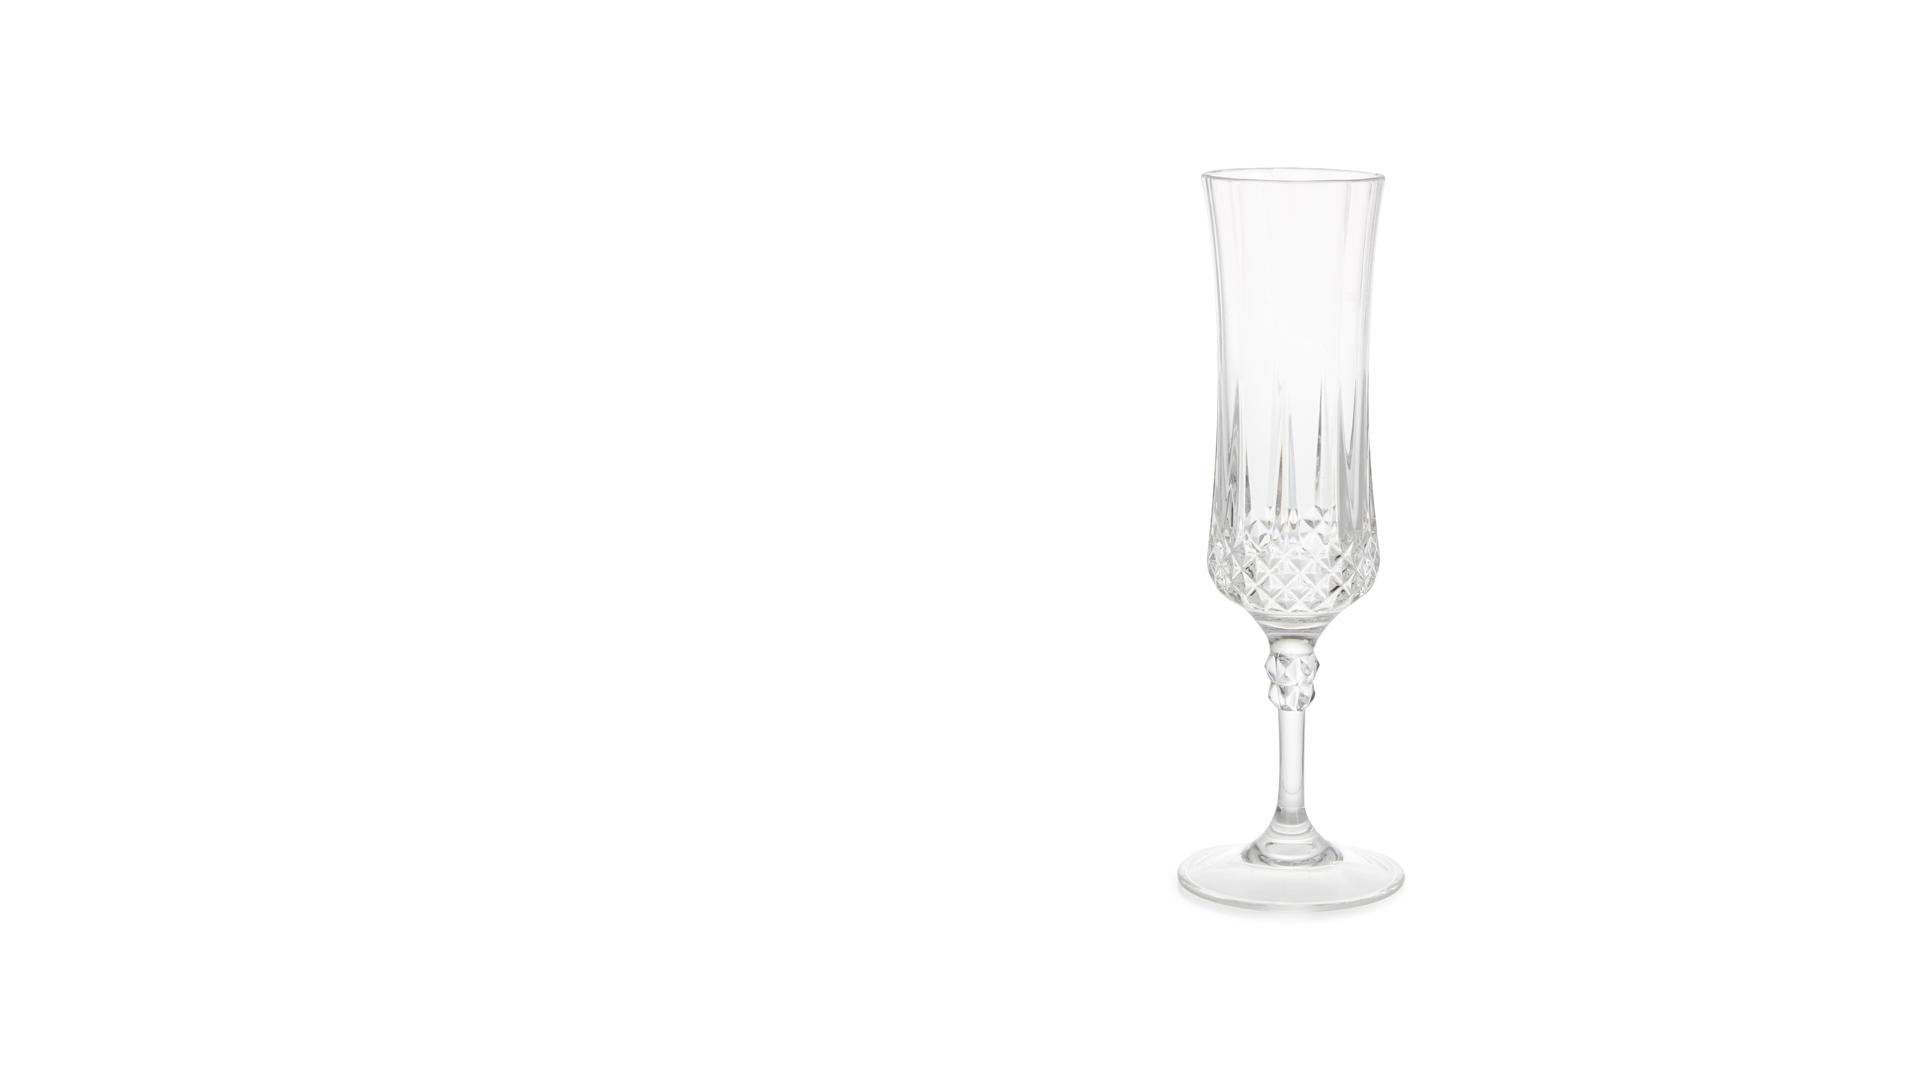 Faceted Champagne Flute - Big Brother 2017